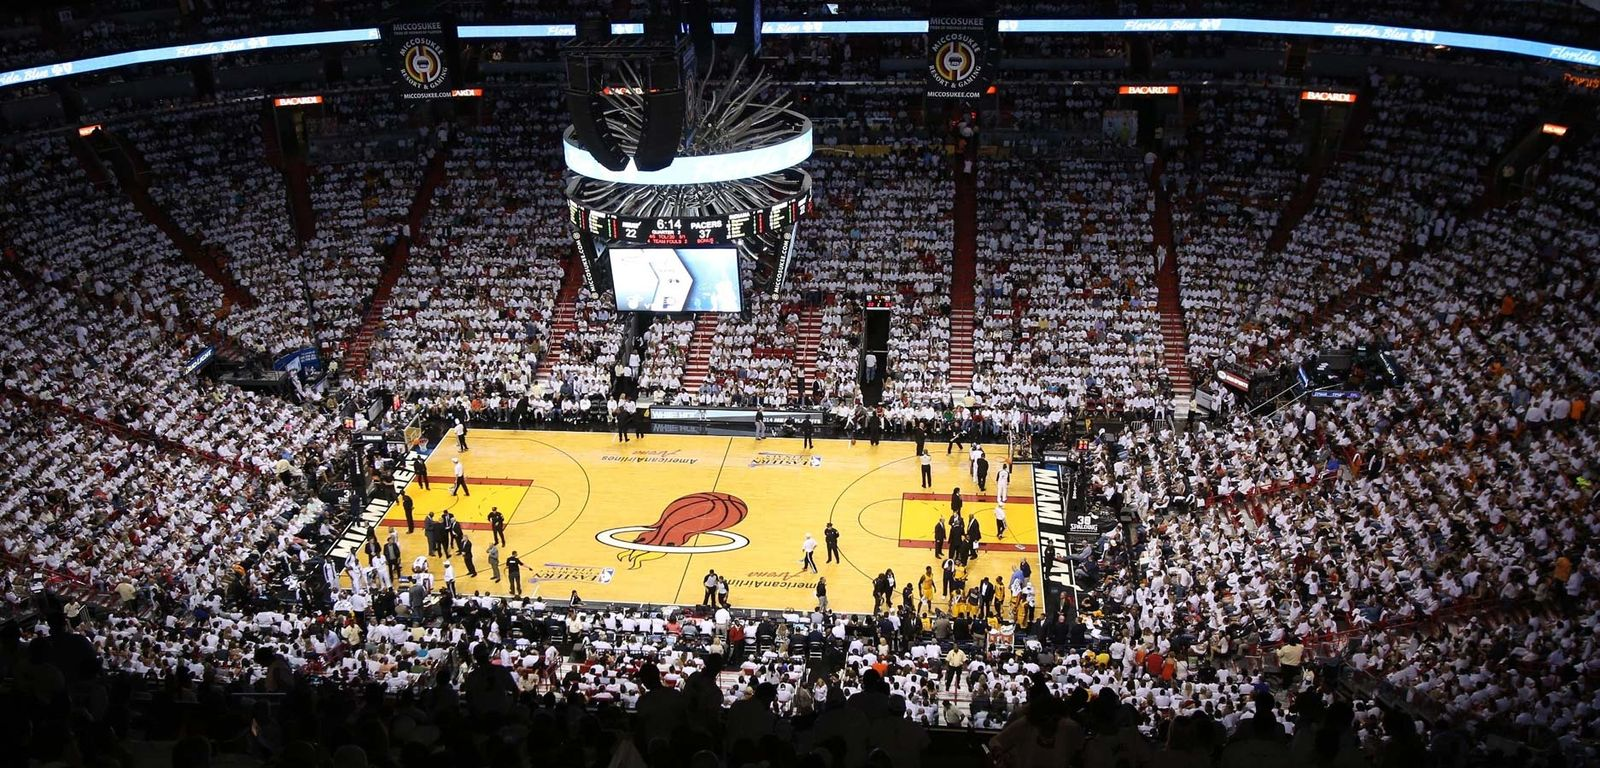 American Airlines Arena Miami Heat Home Game